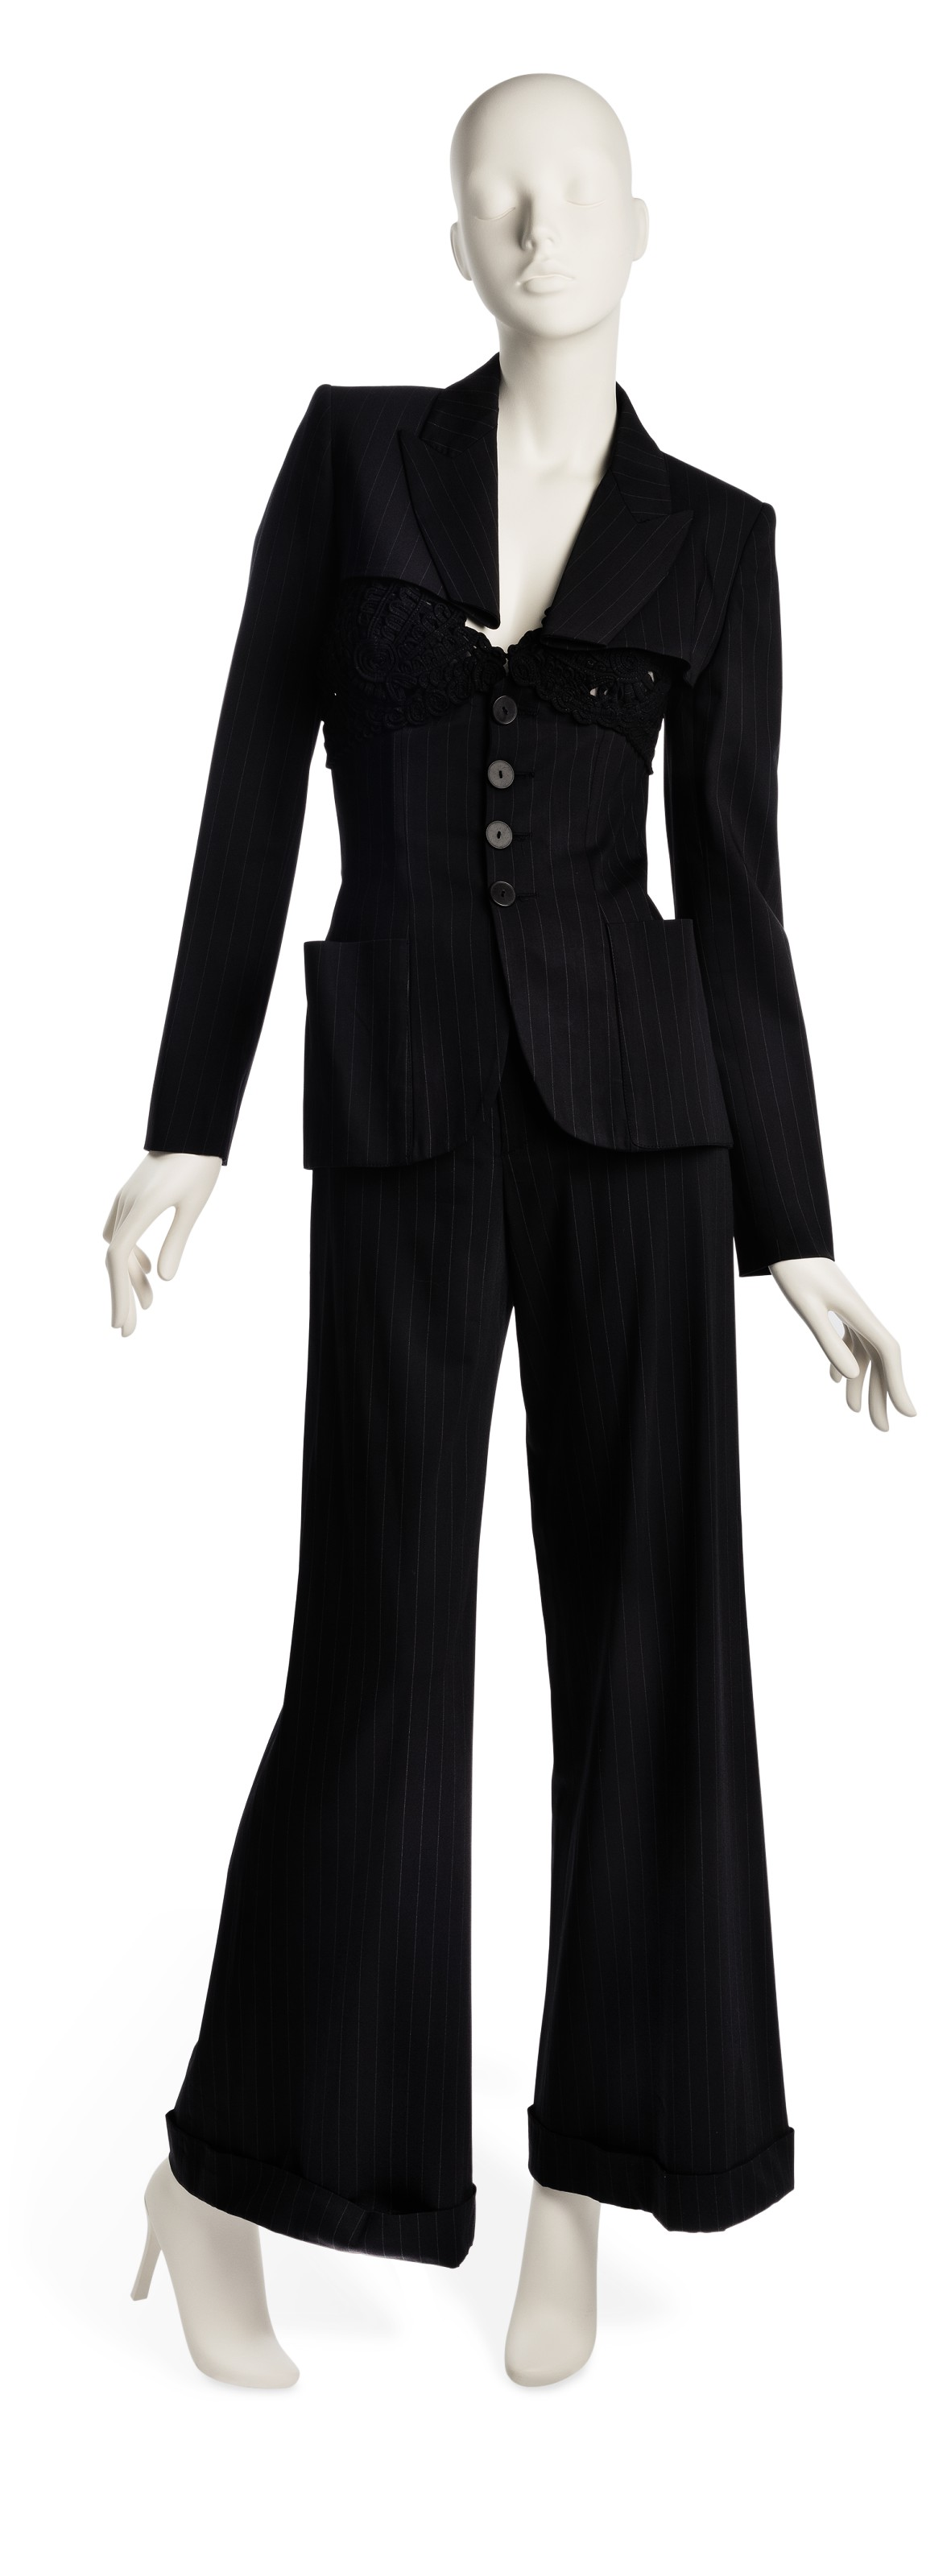 A THREE PIECE PINSTRIPE SUIT